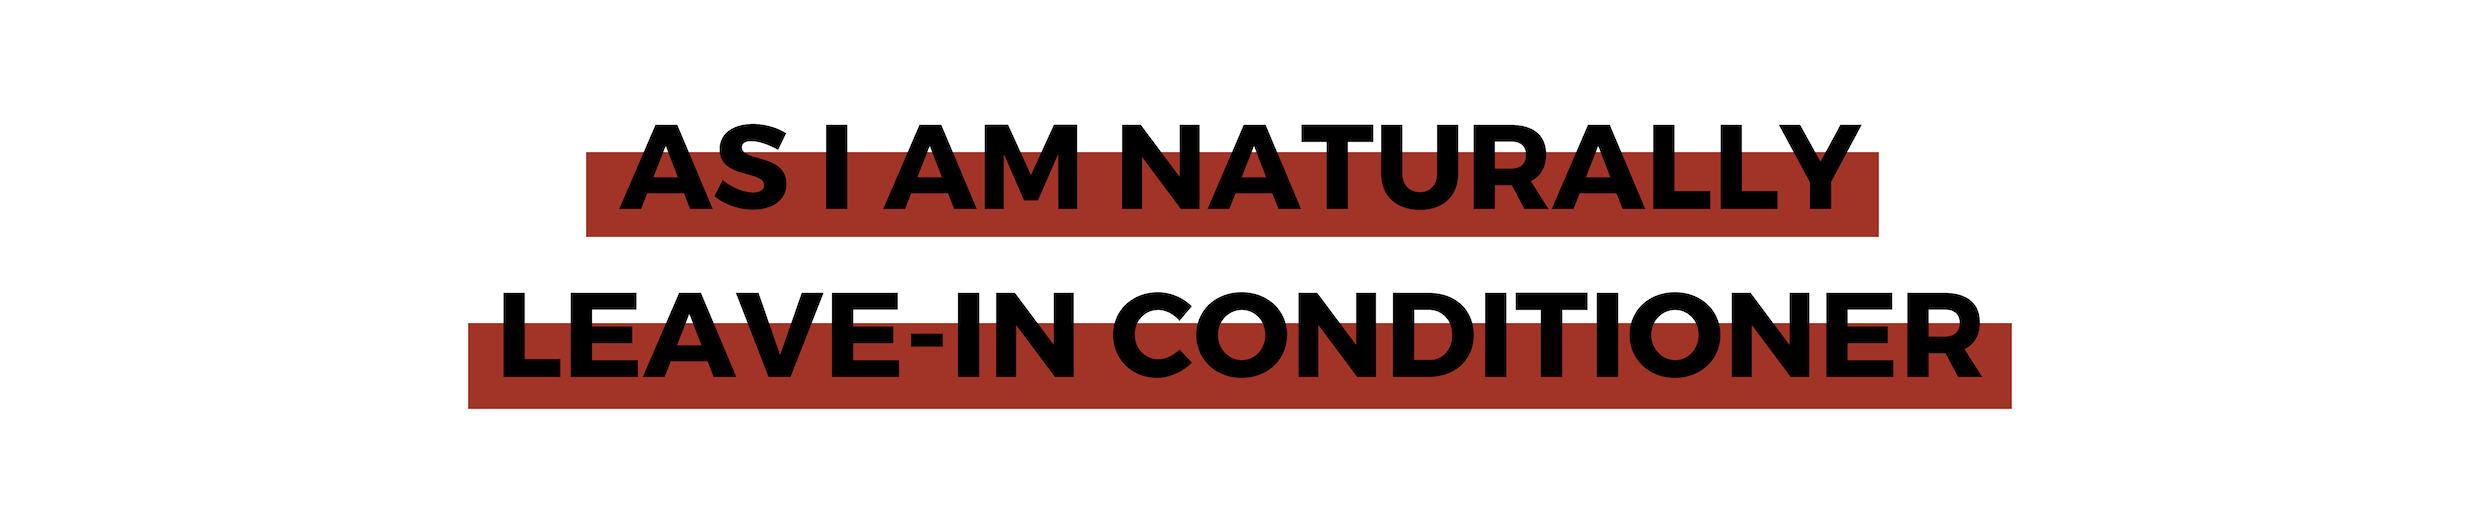 AS I AM NATURALLY LEAVE-IN CONDITIONER.png